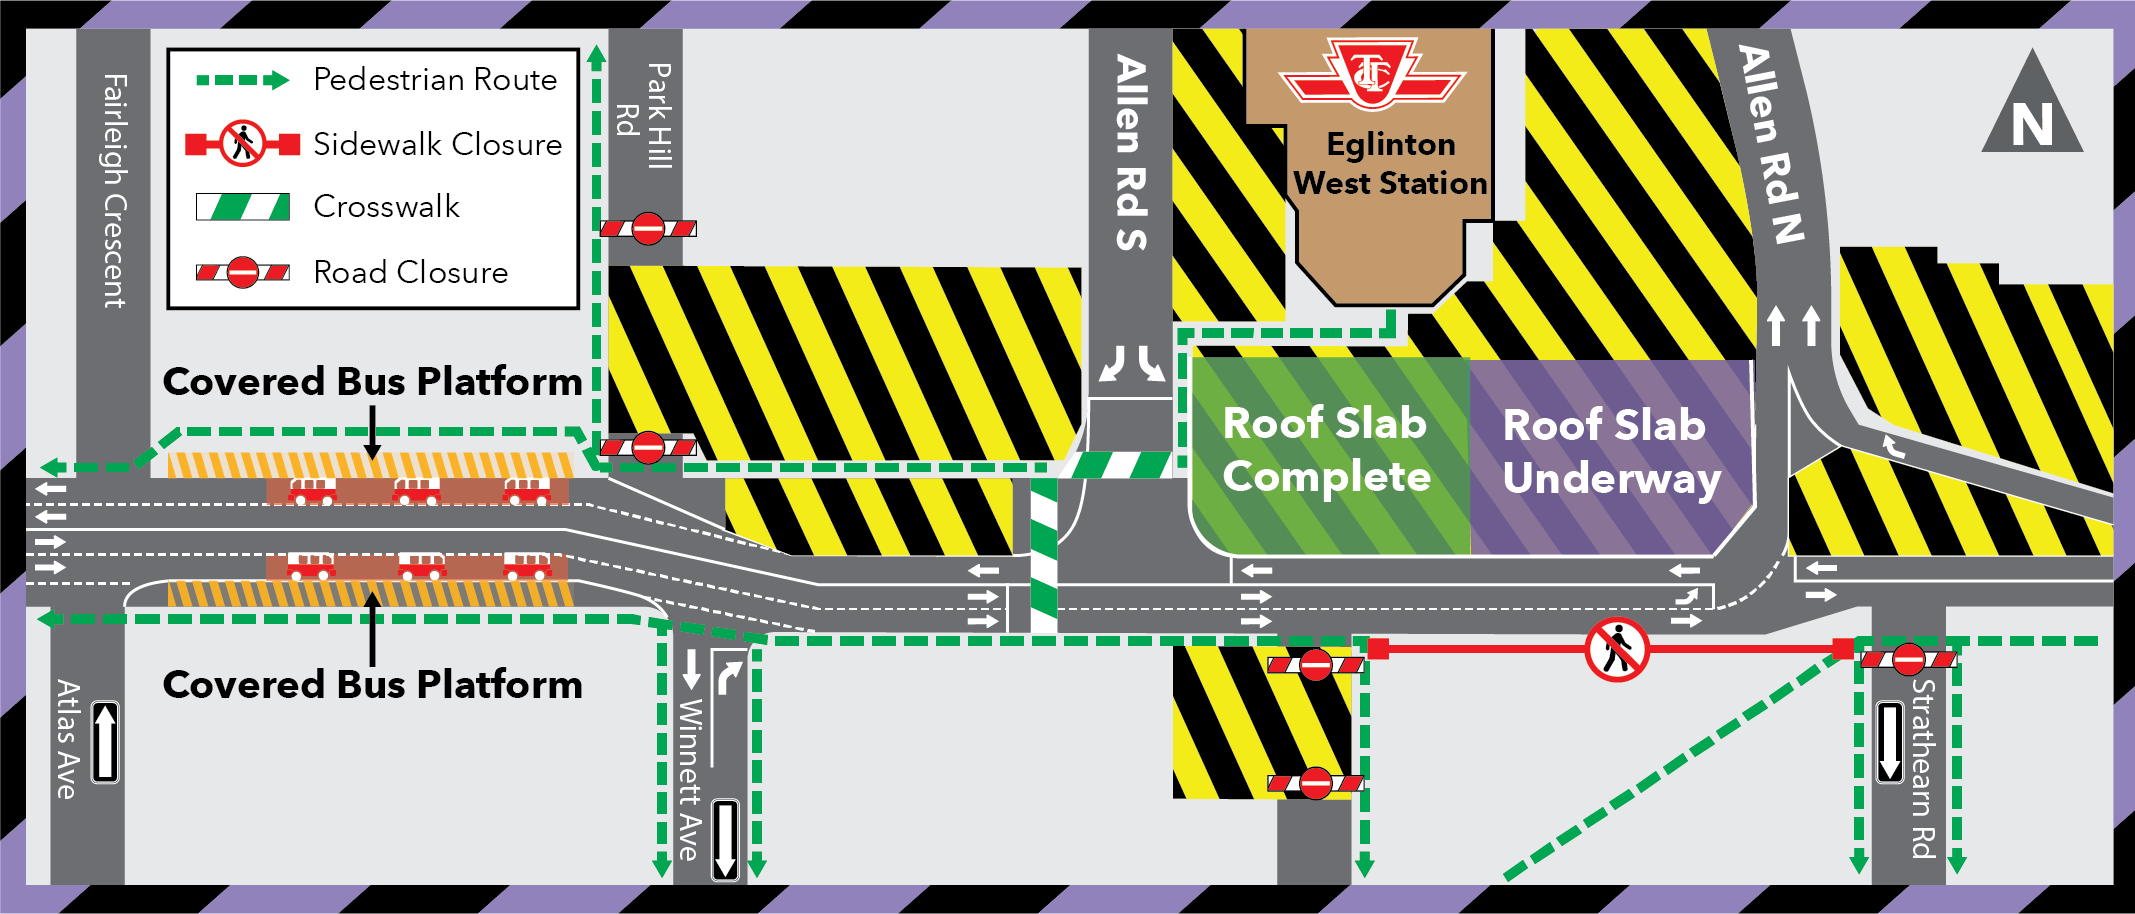 Eglinton West Station Bus Loop Closure: Extended to Late Fall 2020